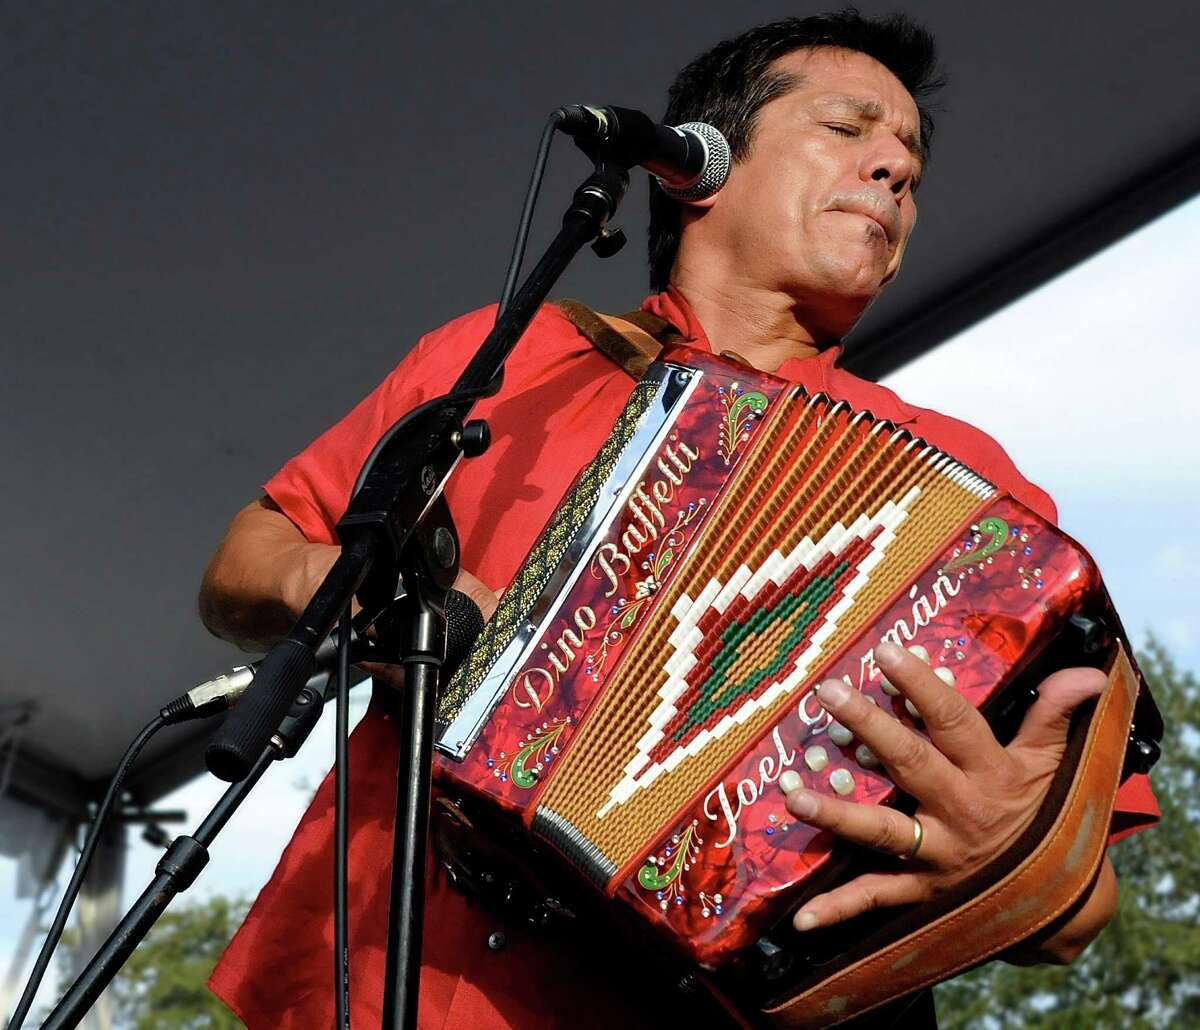 The International Accordion Festival gathers a diverse group of musicians and music lovers, celebrating the colorful instrument and its role in music around the world.